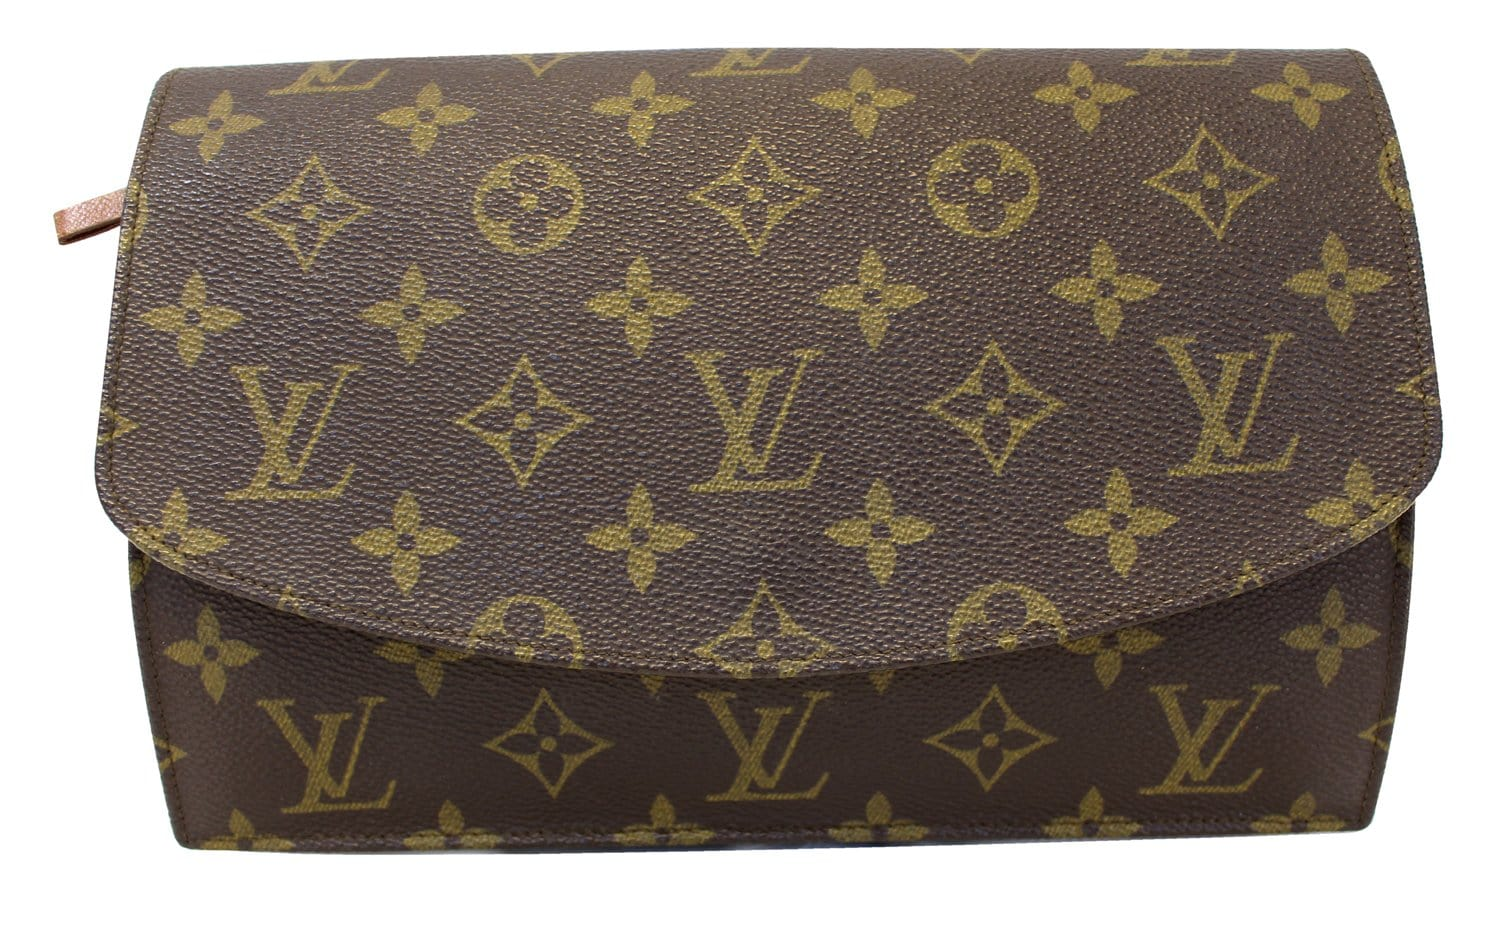 052d6de89eb2 Authentic LOUIS VUITTON Monogram Canvas Pochette Rabat Clutch E3519